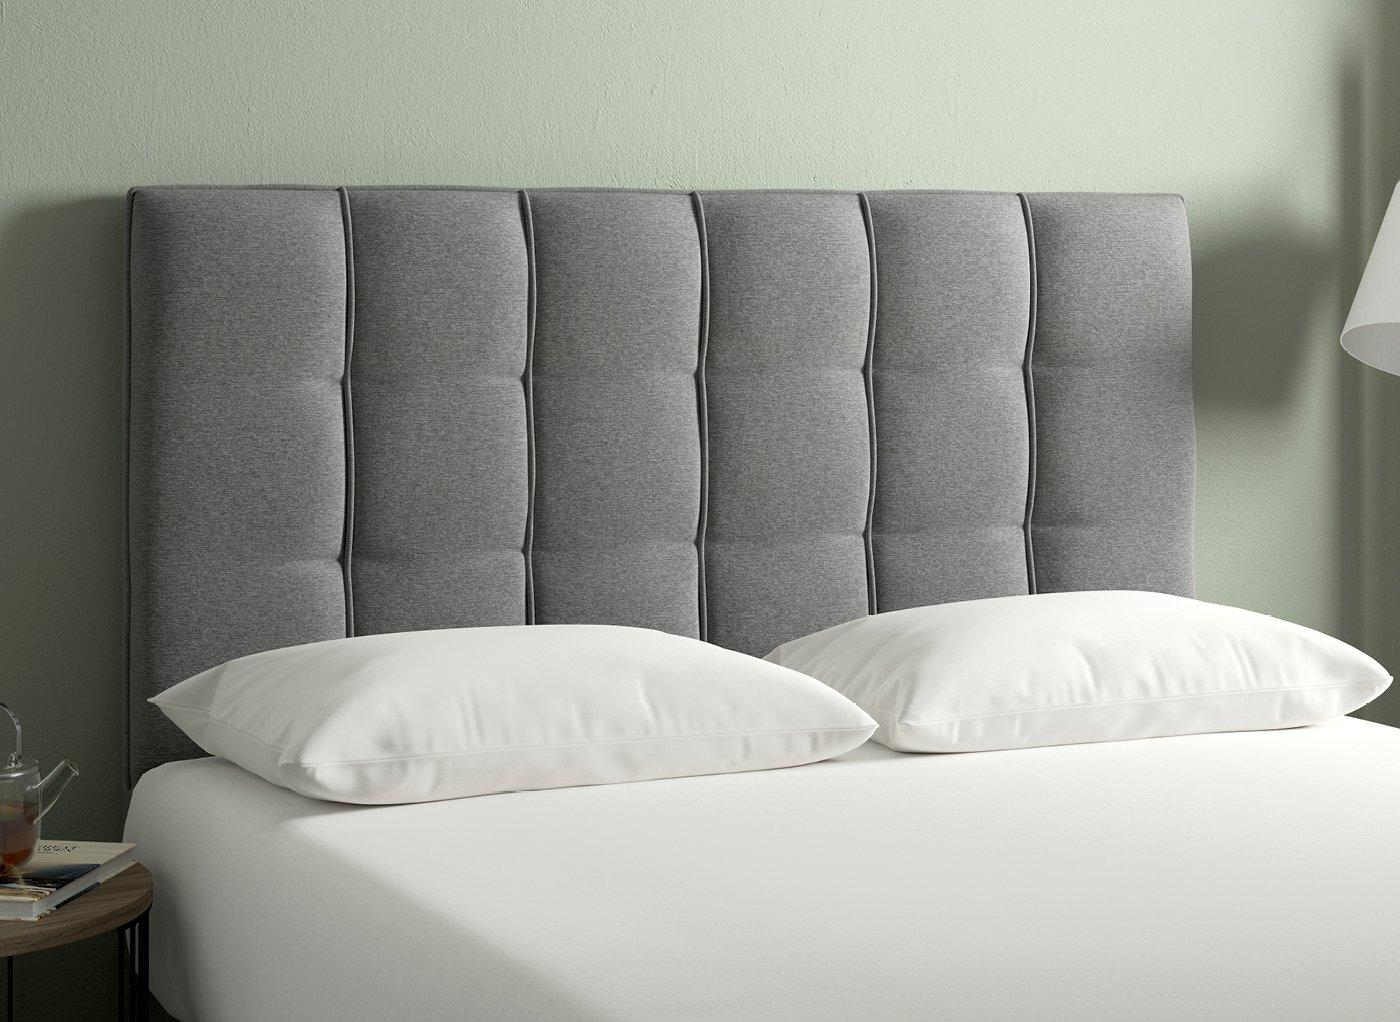 Iowa Headboard 4'6 Double GREY